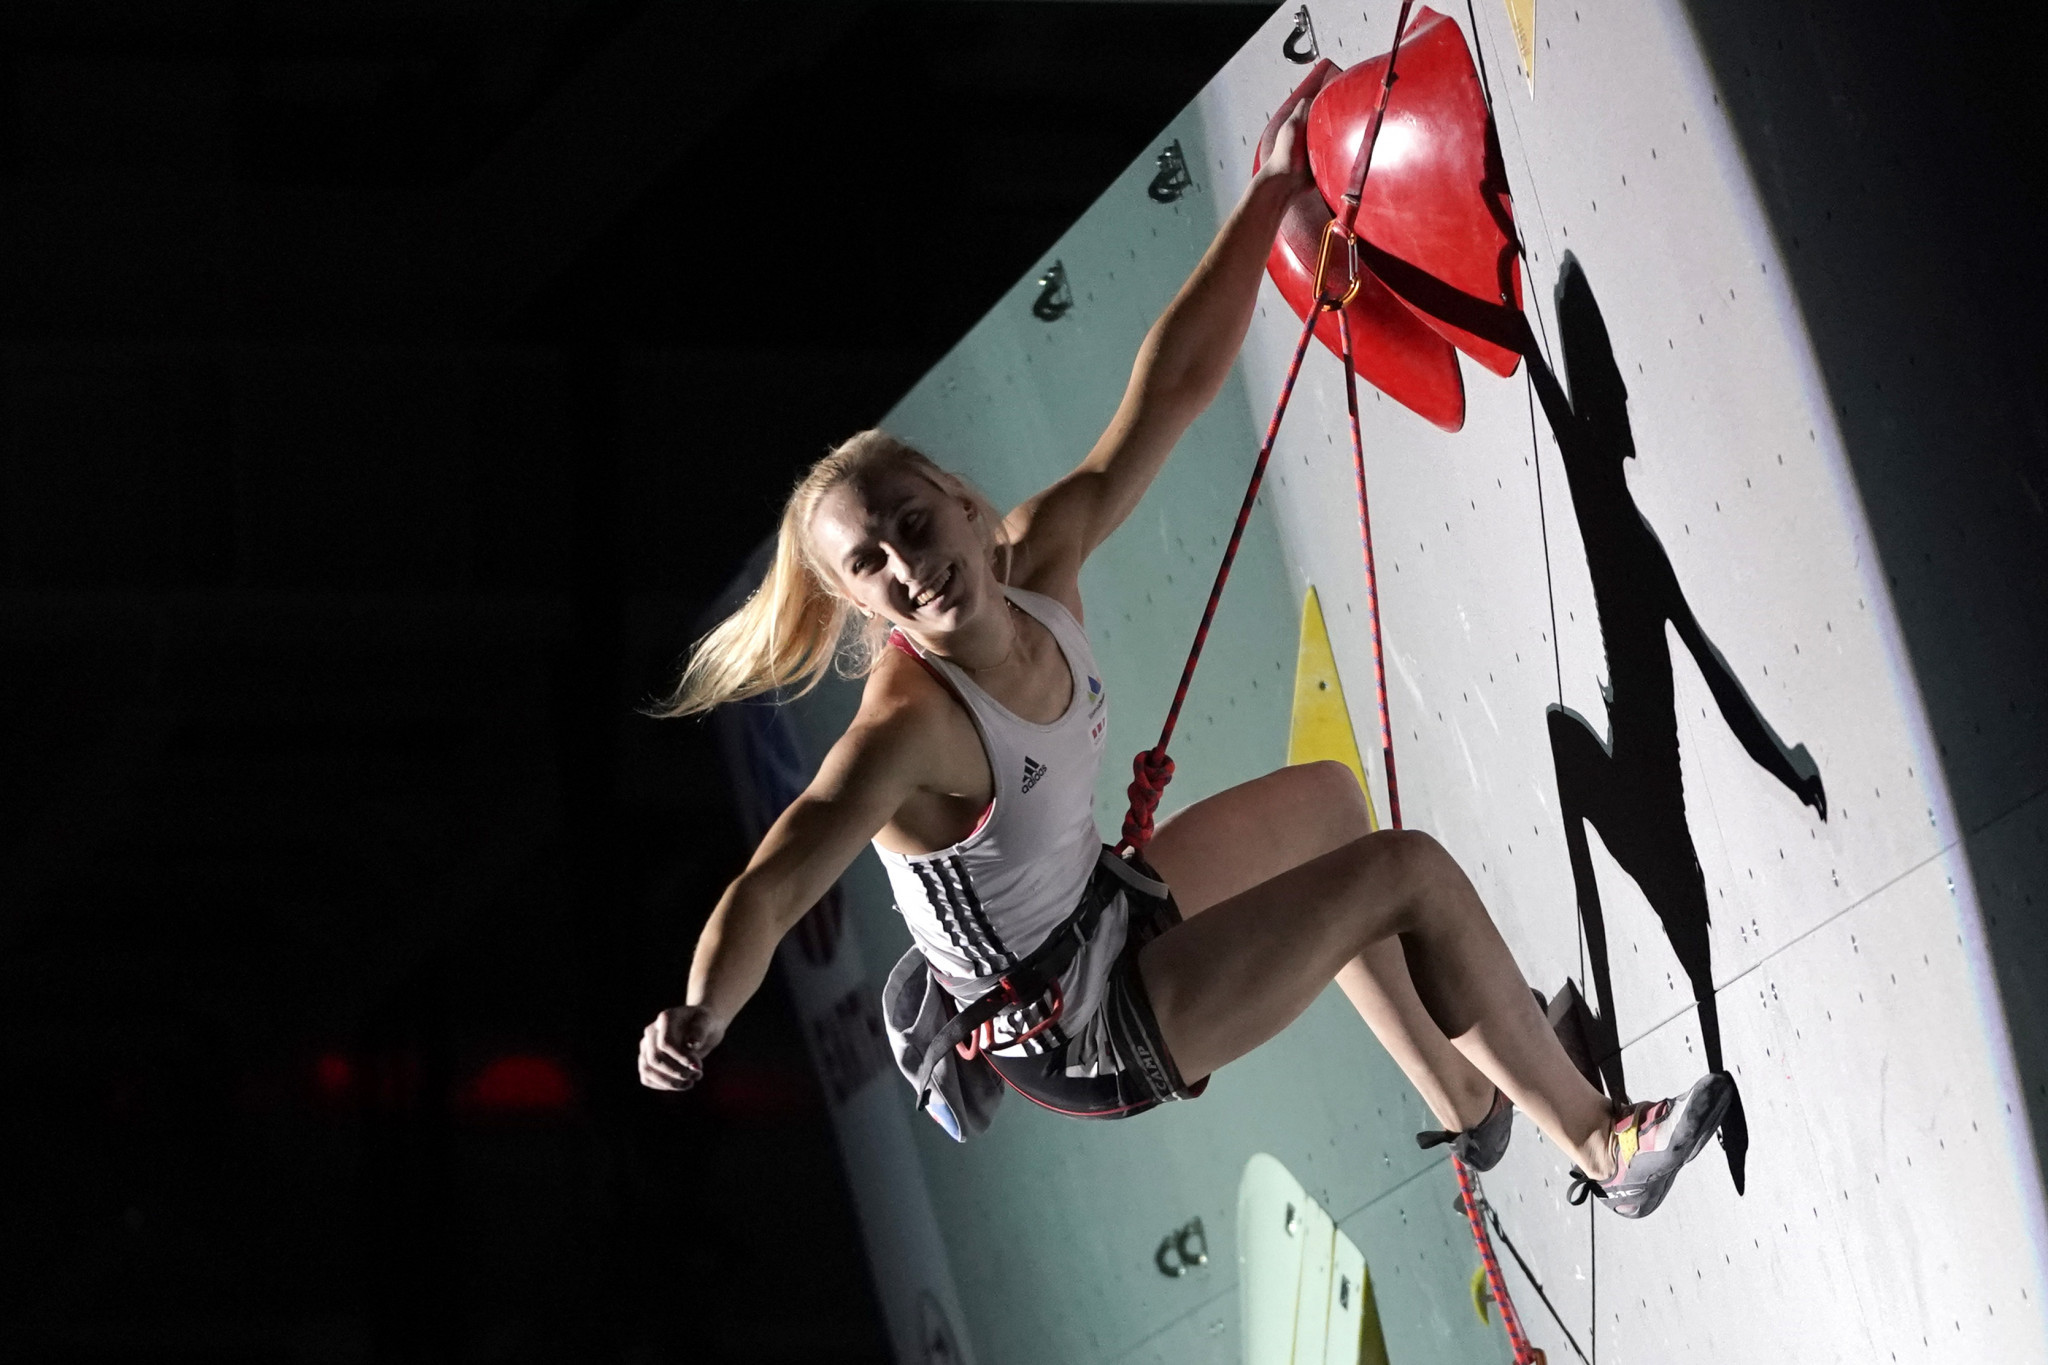 Sport climbing and triathlon added to Kraków-Małopolska 2023 European Games programme